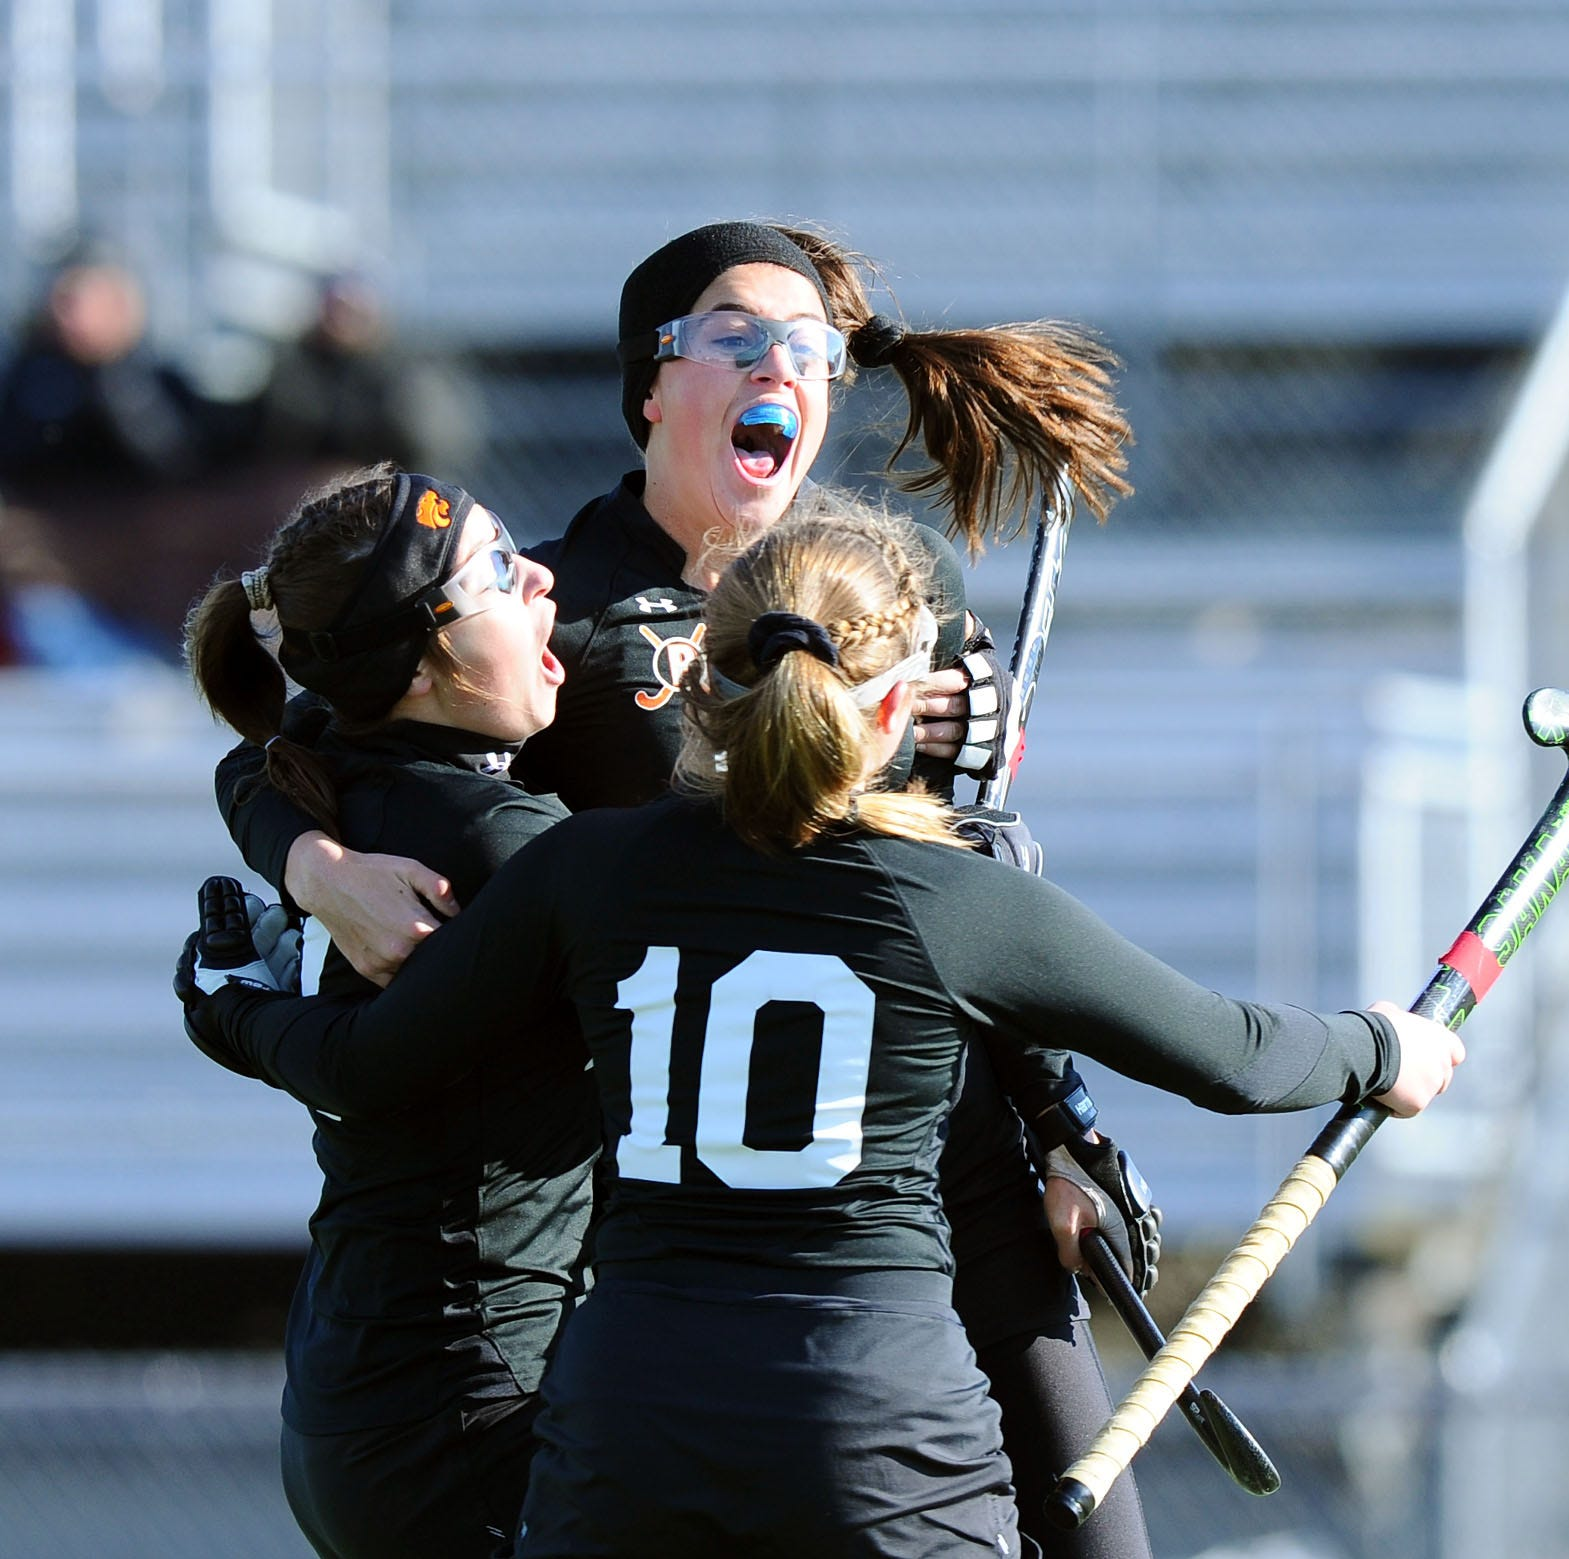 Julian's game-winner lifts Palmyra field hockey to OT triumph and into state semifinals